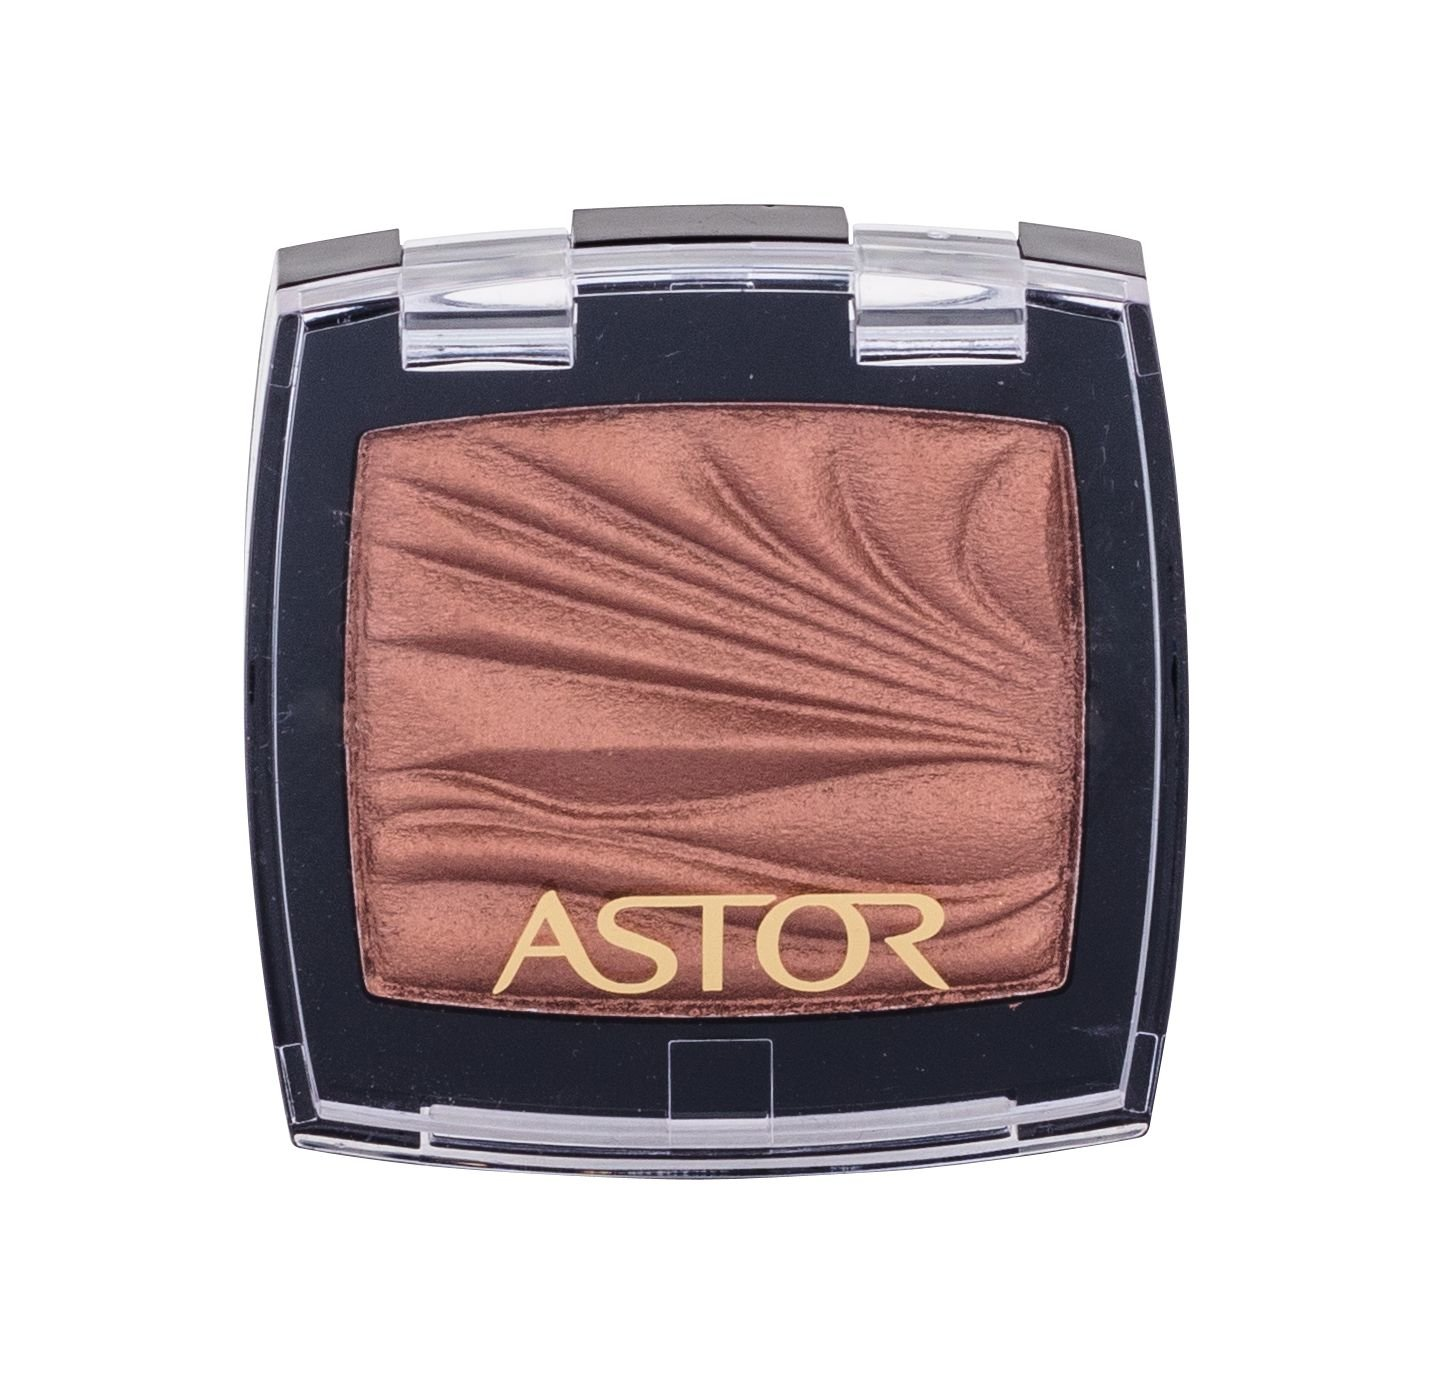 ASTOR Eye Artist Cosmetic 4ml 120 Precious Bronze